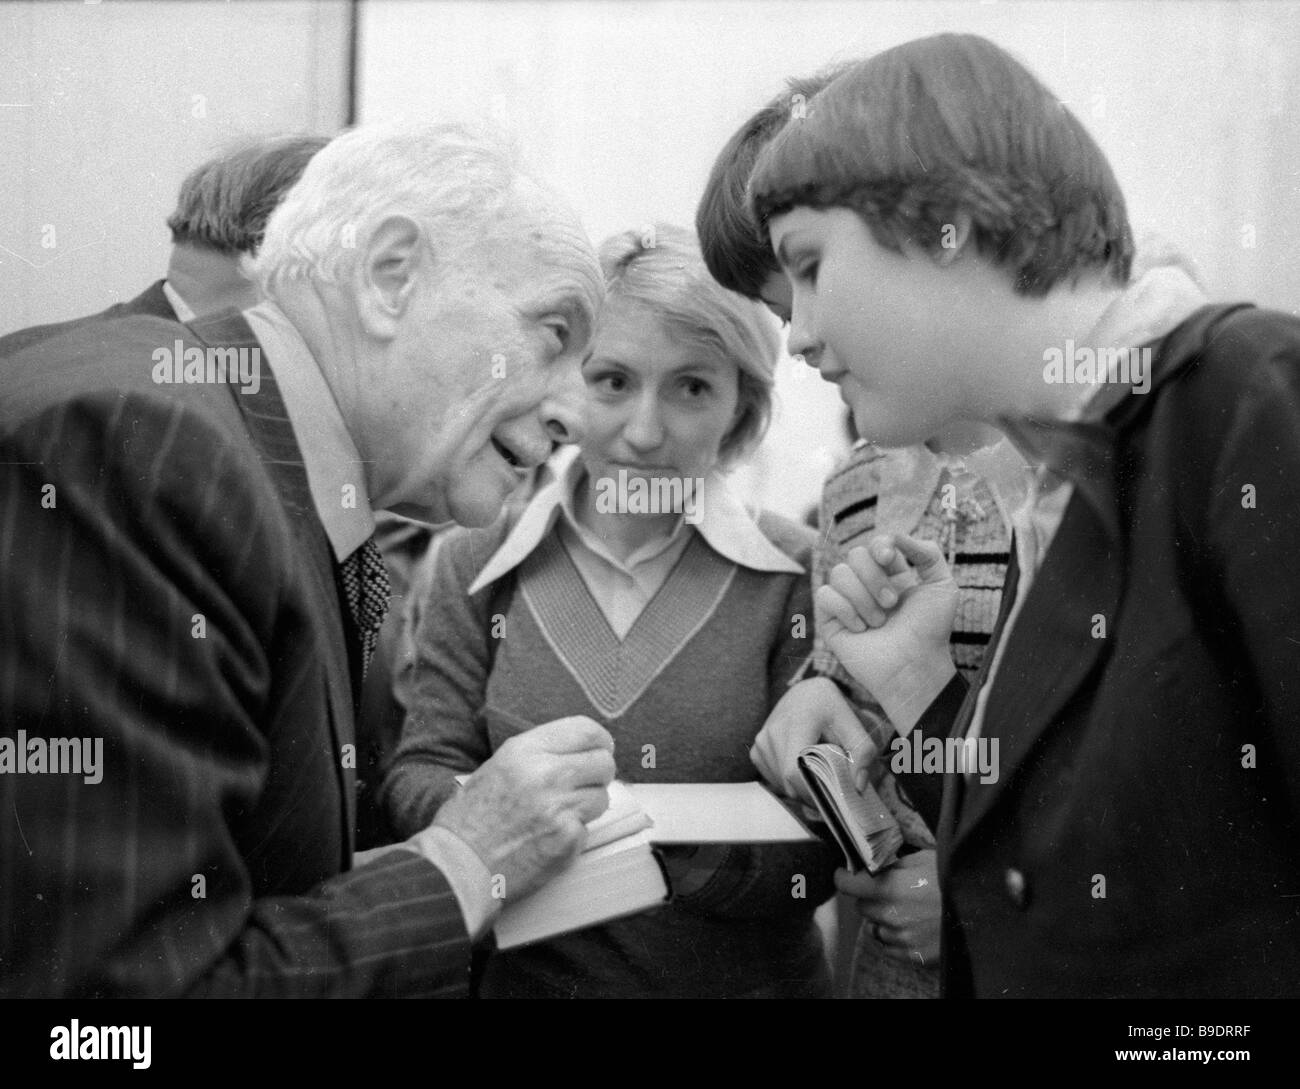 French writer Louis Aragon left signing his books - Stock Image